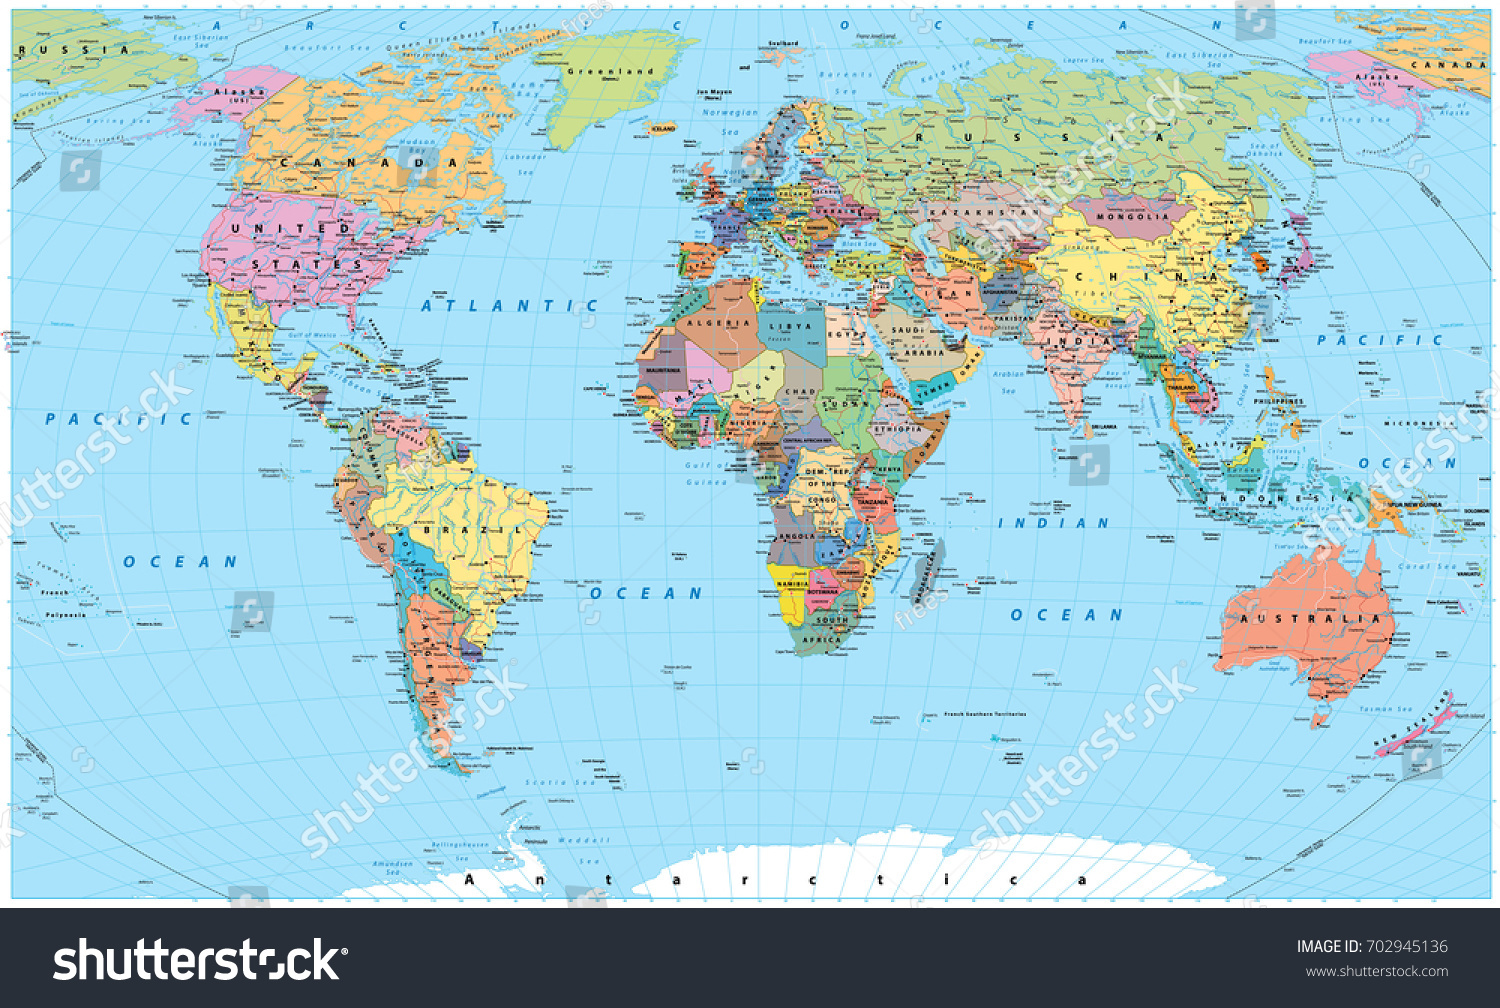 Colored world map borders countries roads vectores en stock colored world map borders countries roads vectores en stock 702945136 shutterstock gumiabroncs Choice Image